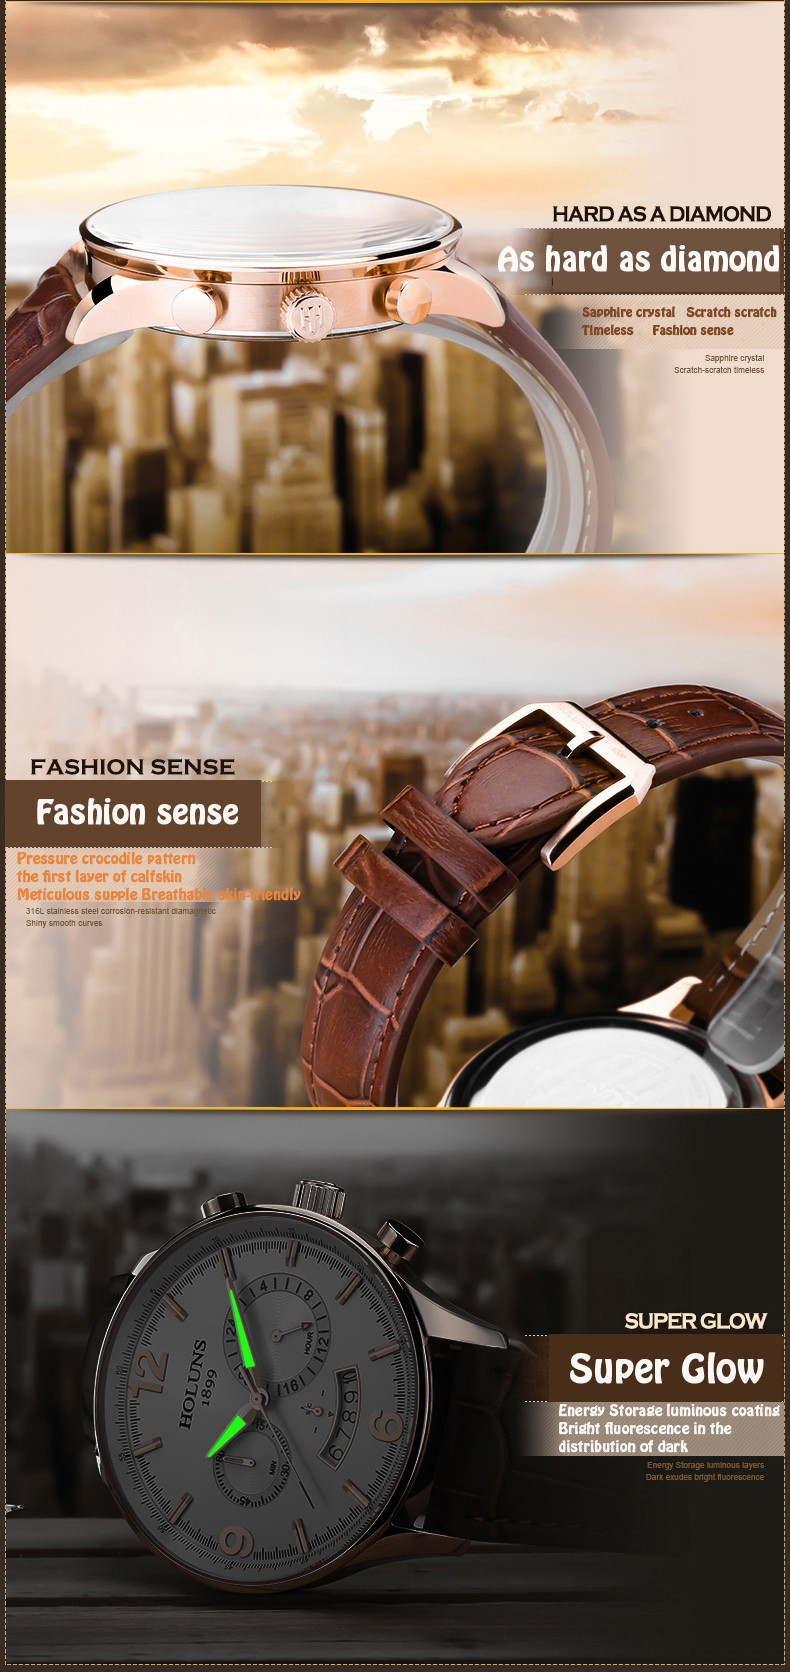 Authentic Modern Men's Quartz Watch Fashion Large Face Legend Watches Men Luxury Brand Relogio Masculino Timepieces